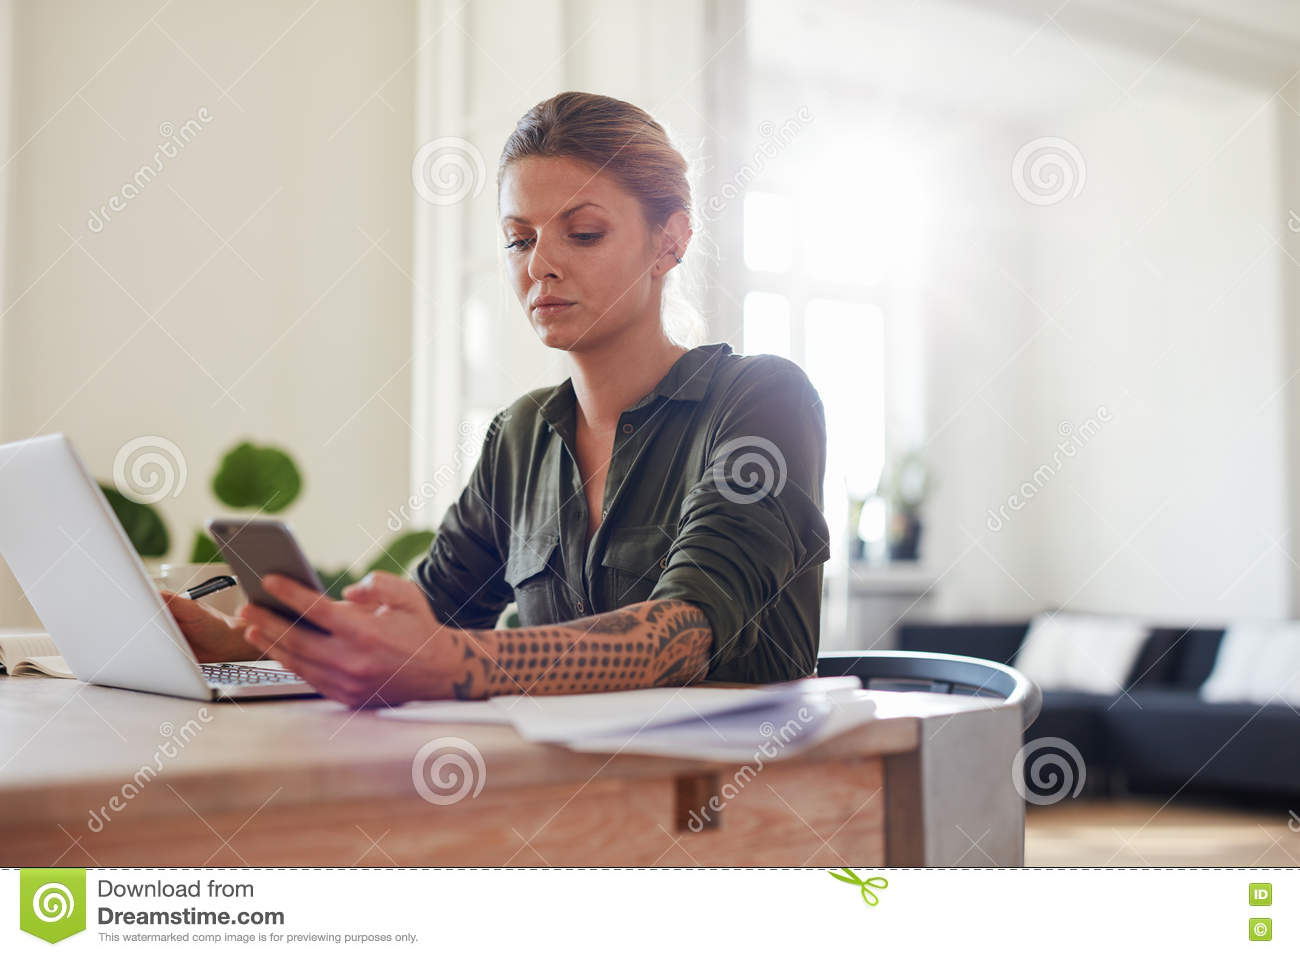 Stupendous Young Woman Using Mobile Phone At Home Office Stock Photo Image Largest Home Design Picture Inspirations Pitcheantrous